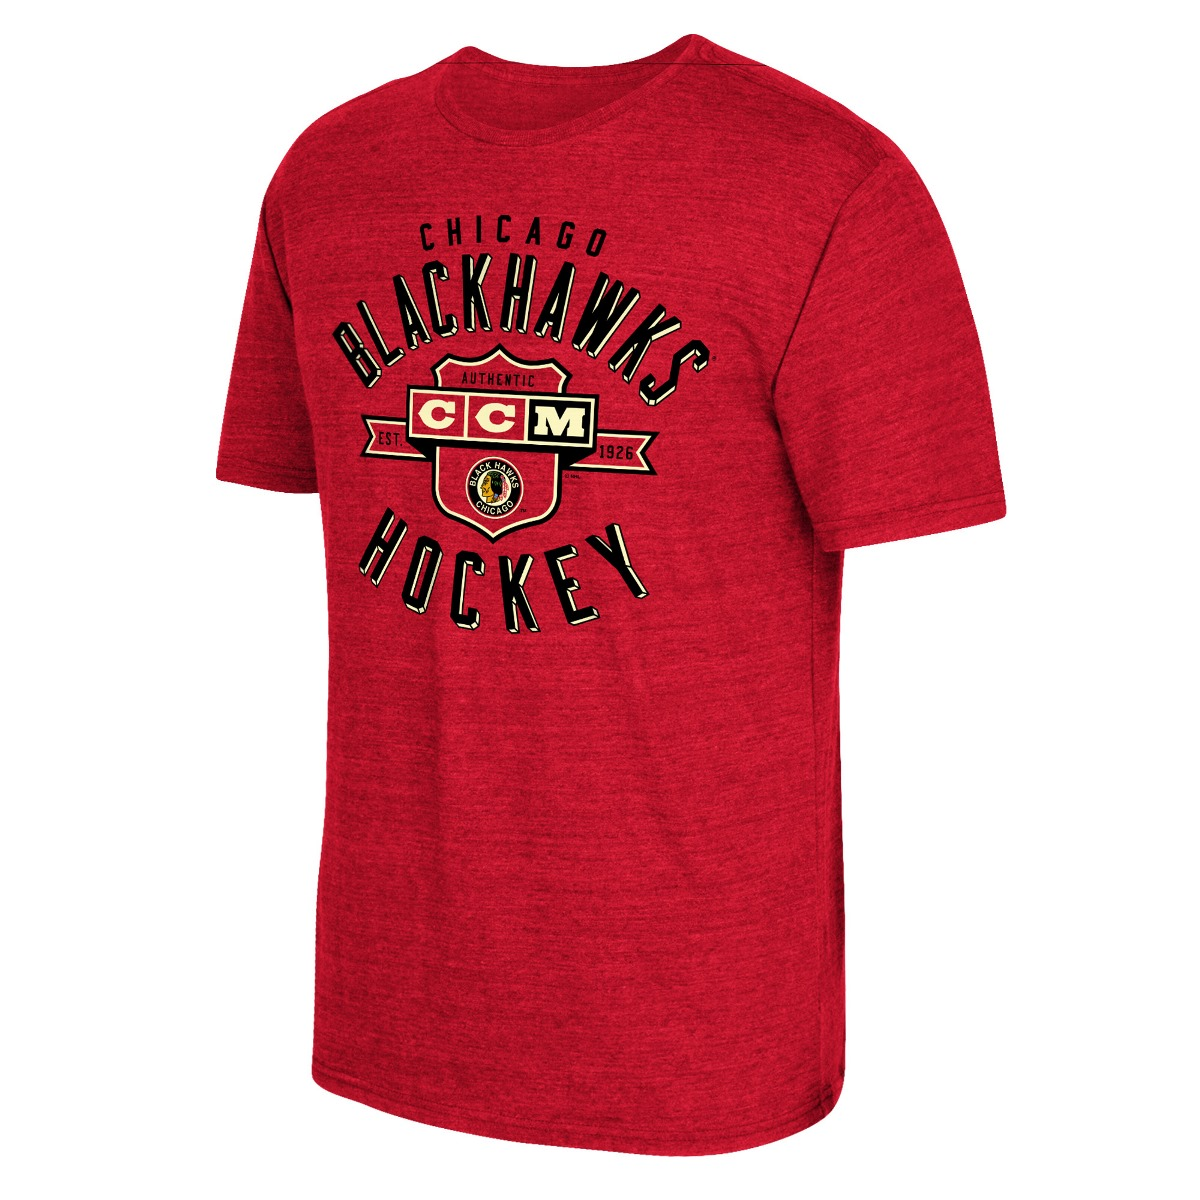 "Chicago Blackhawks CCM ""Supra Shield"" NHL Tri-Blend Men's T-Shirt"